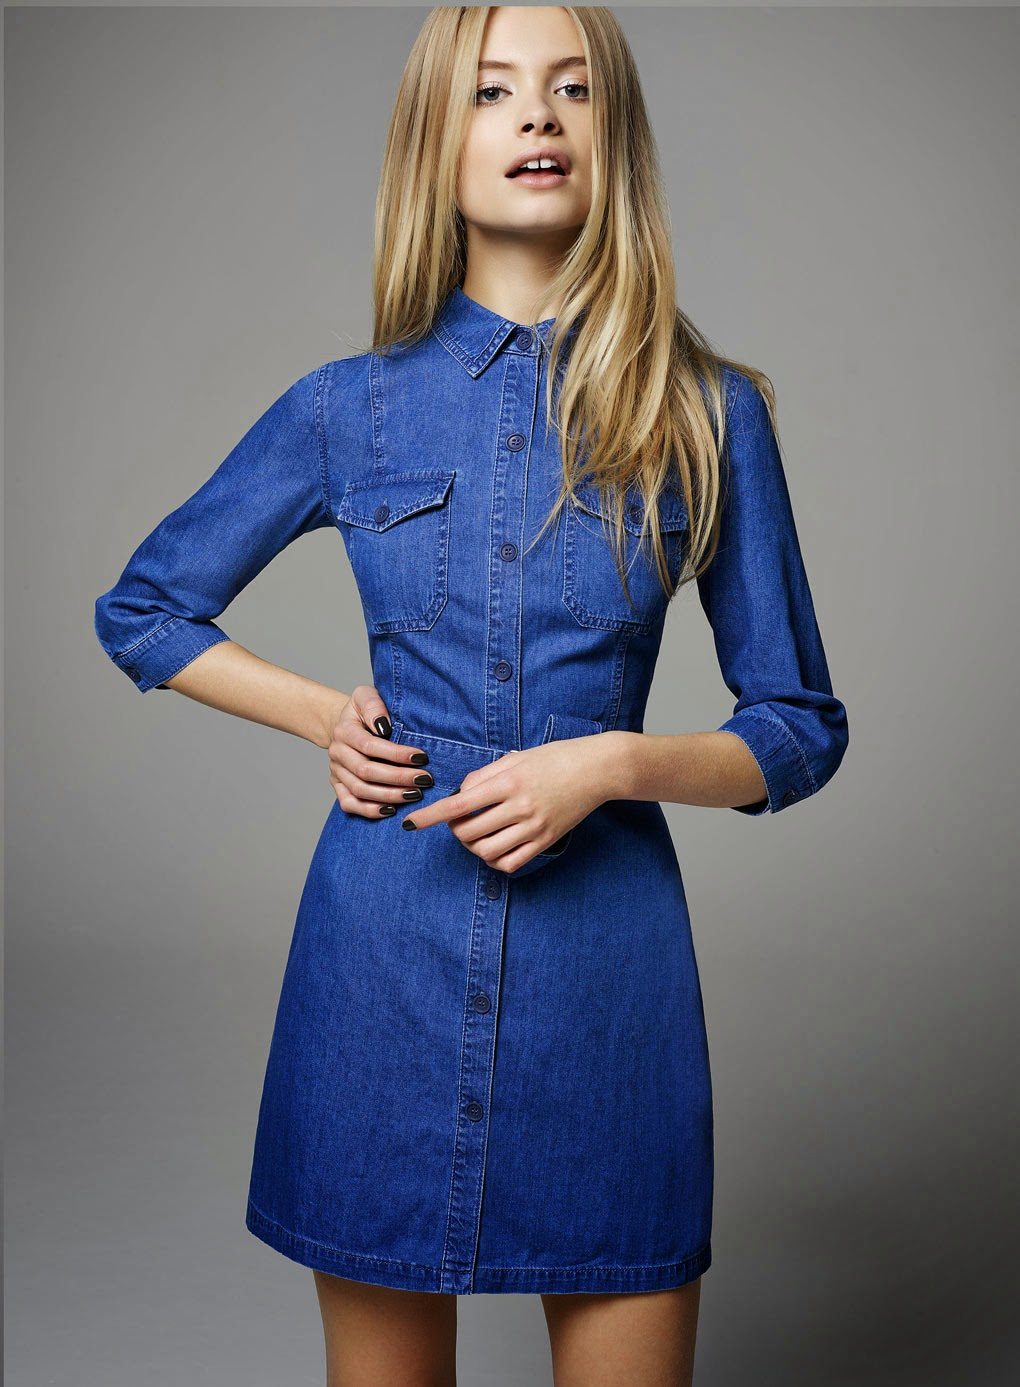 selfridge denim dress